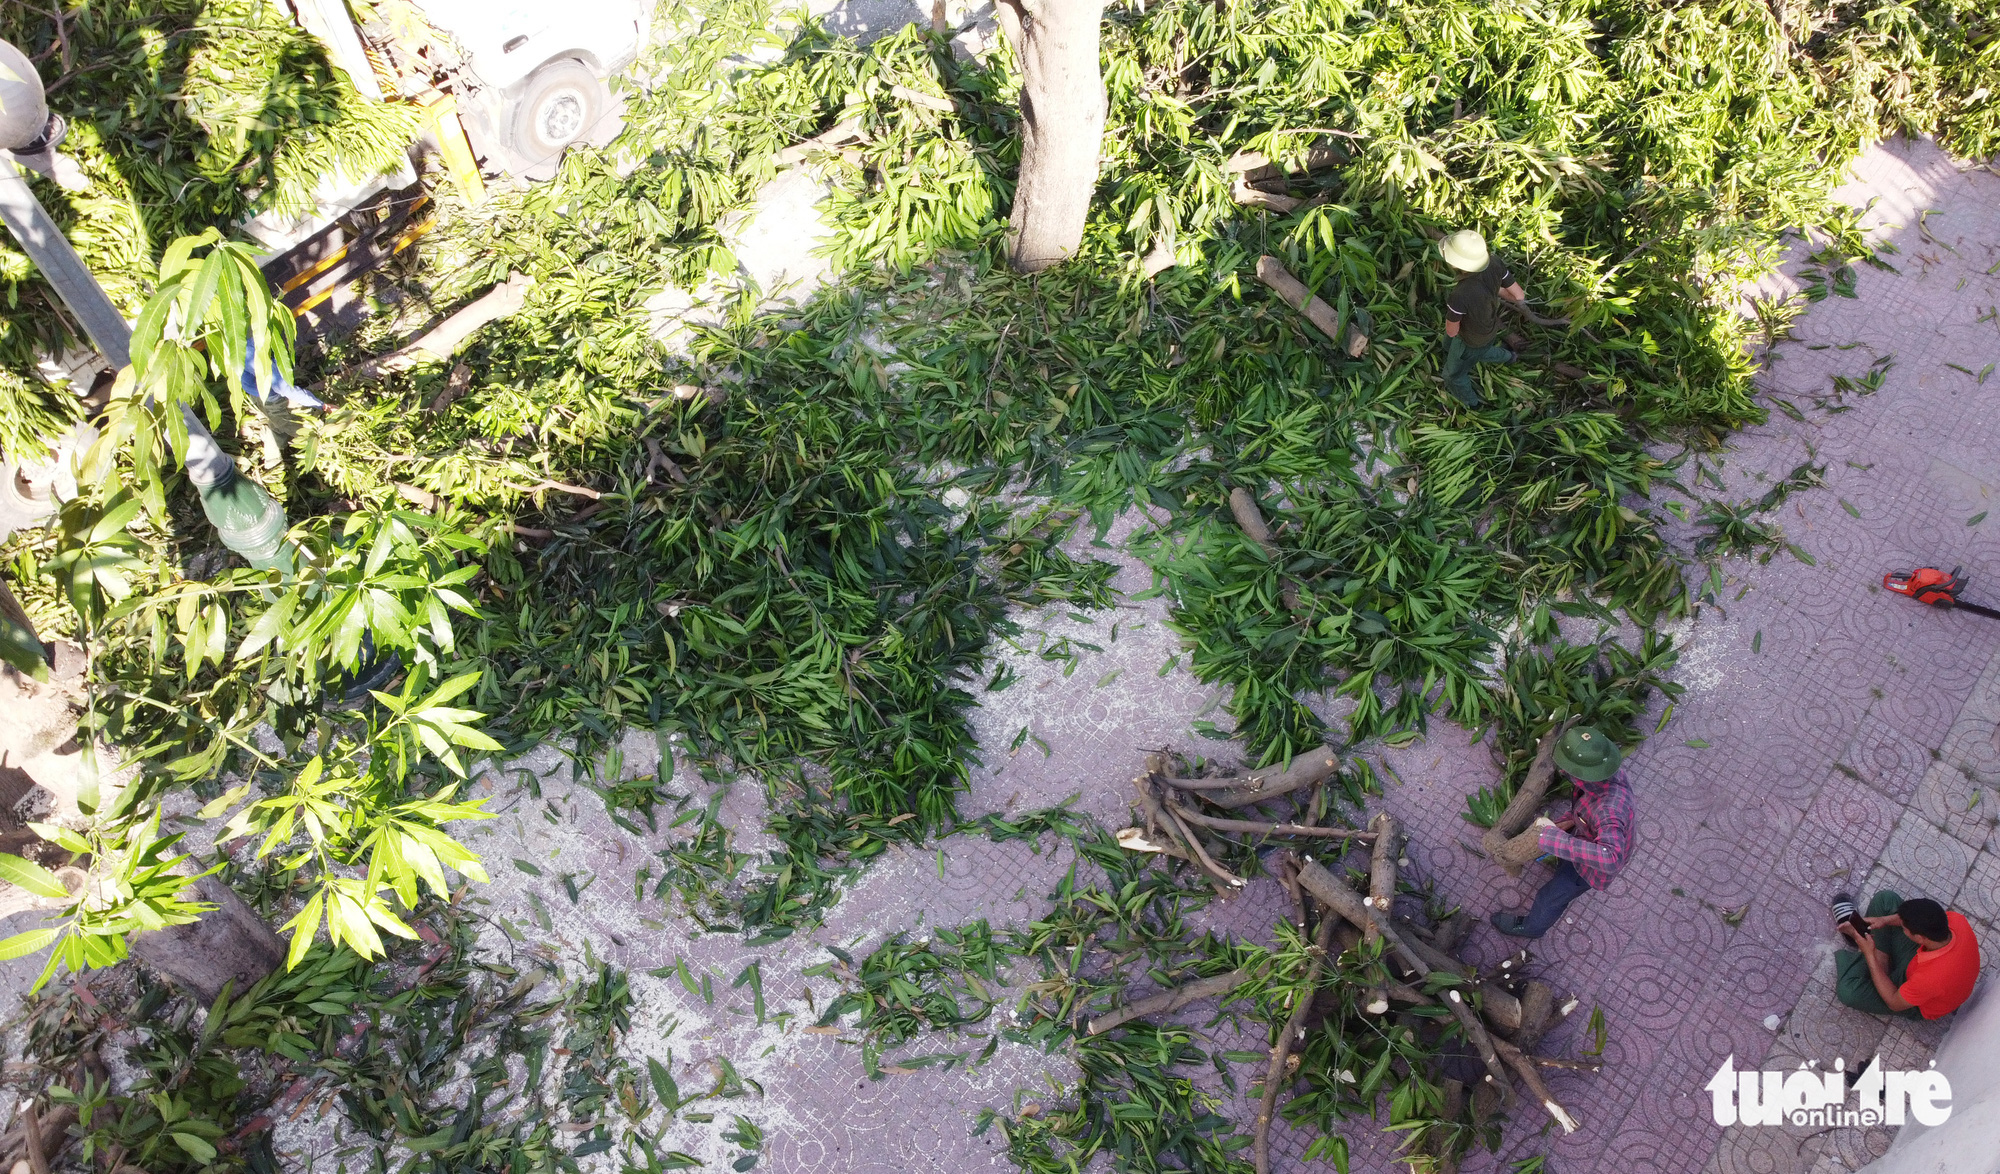 Sidewalks of Vinh City are strewn with mango tree branches after tree trimming in Vinh City, Nghe An Province, Vietnam. Photo: Doan Hoa / Tuoi Tre